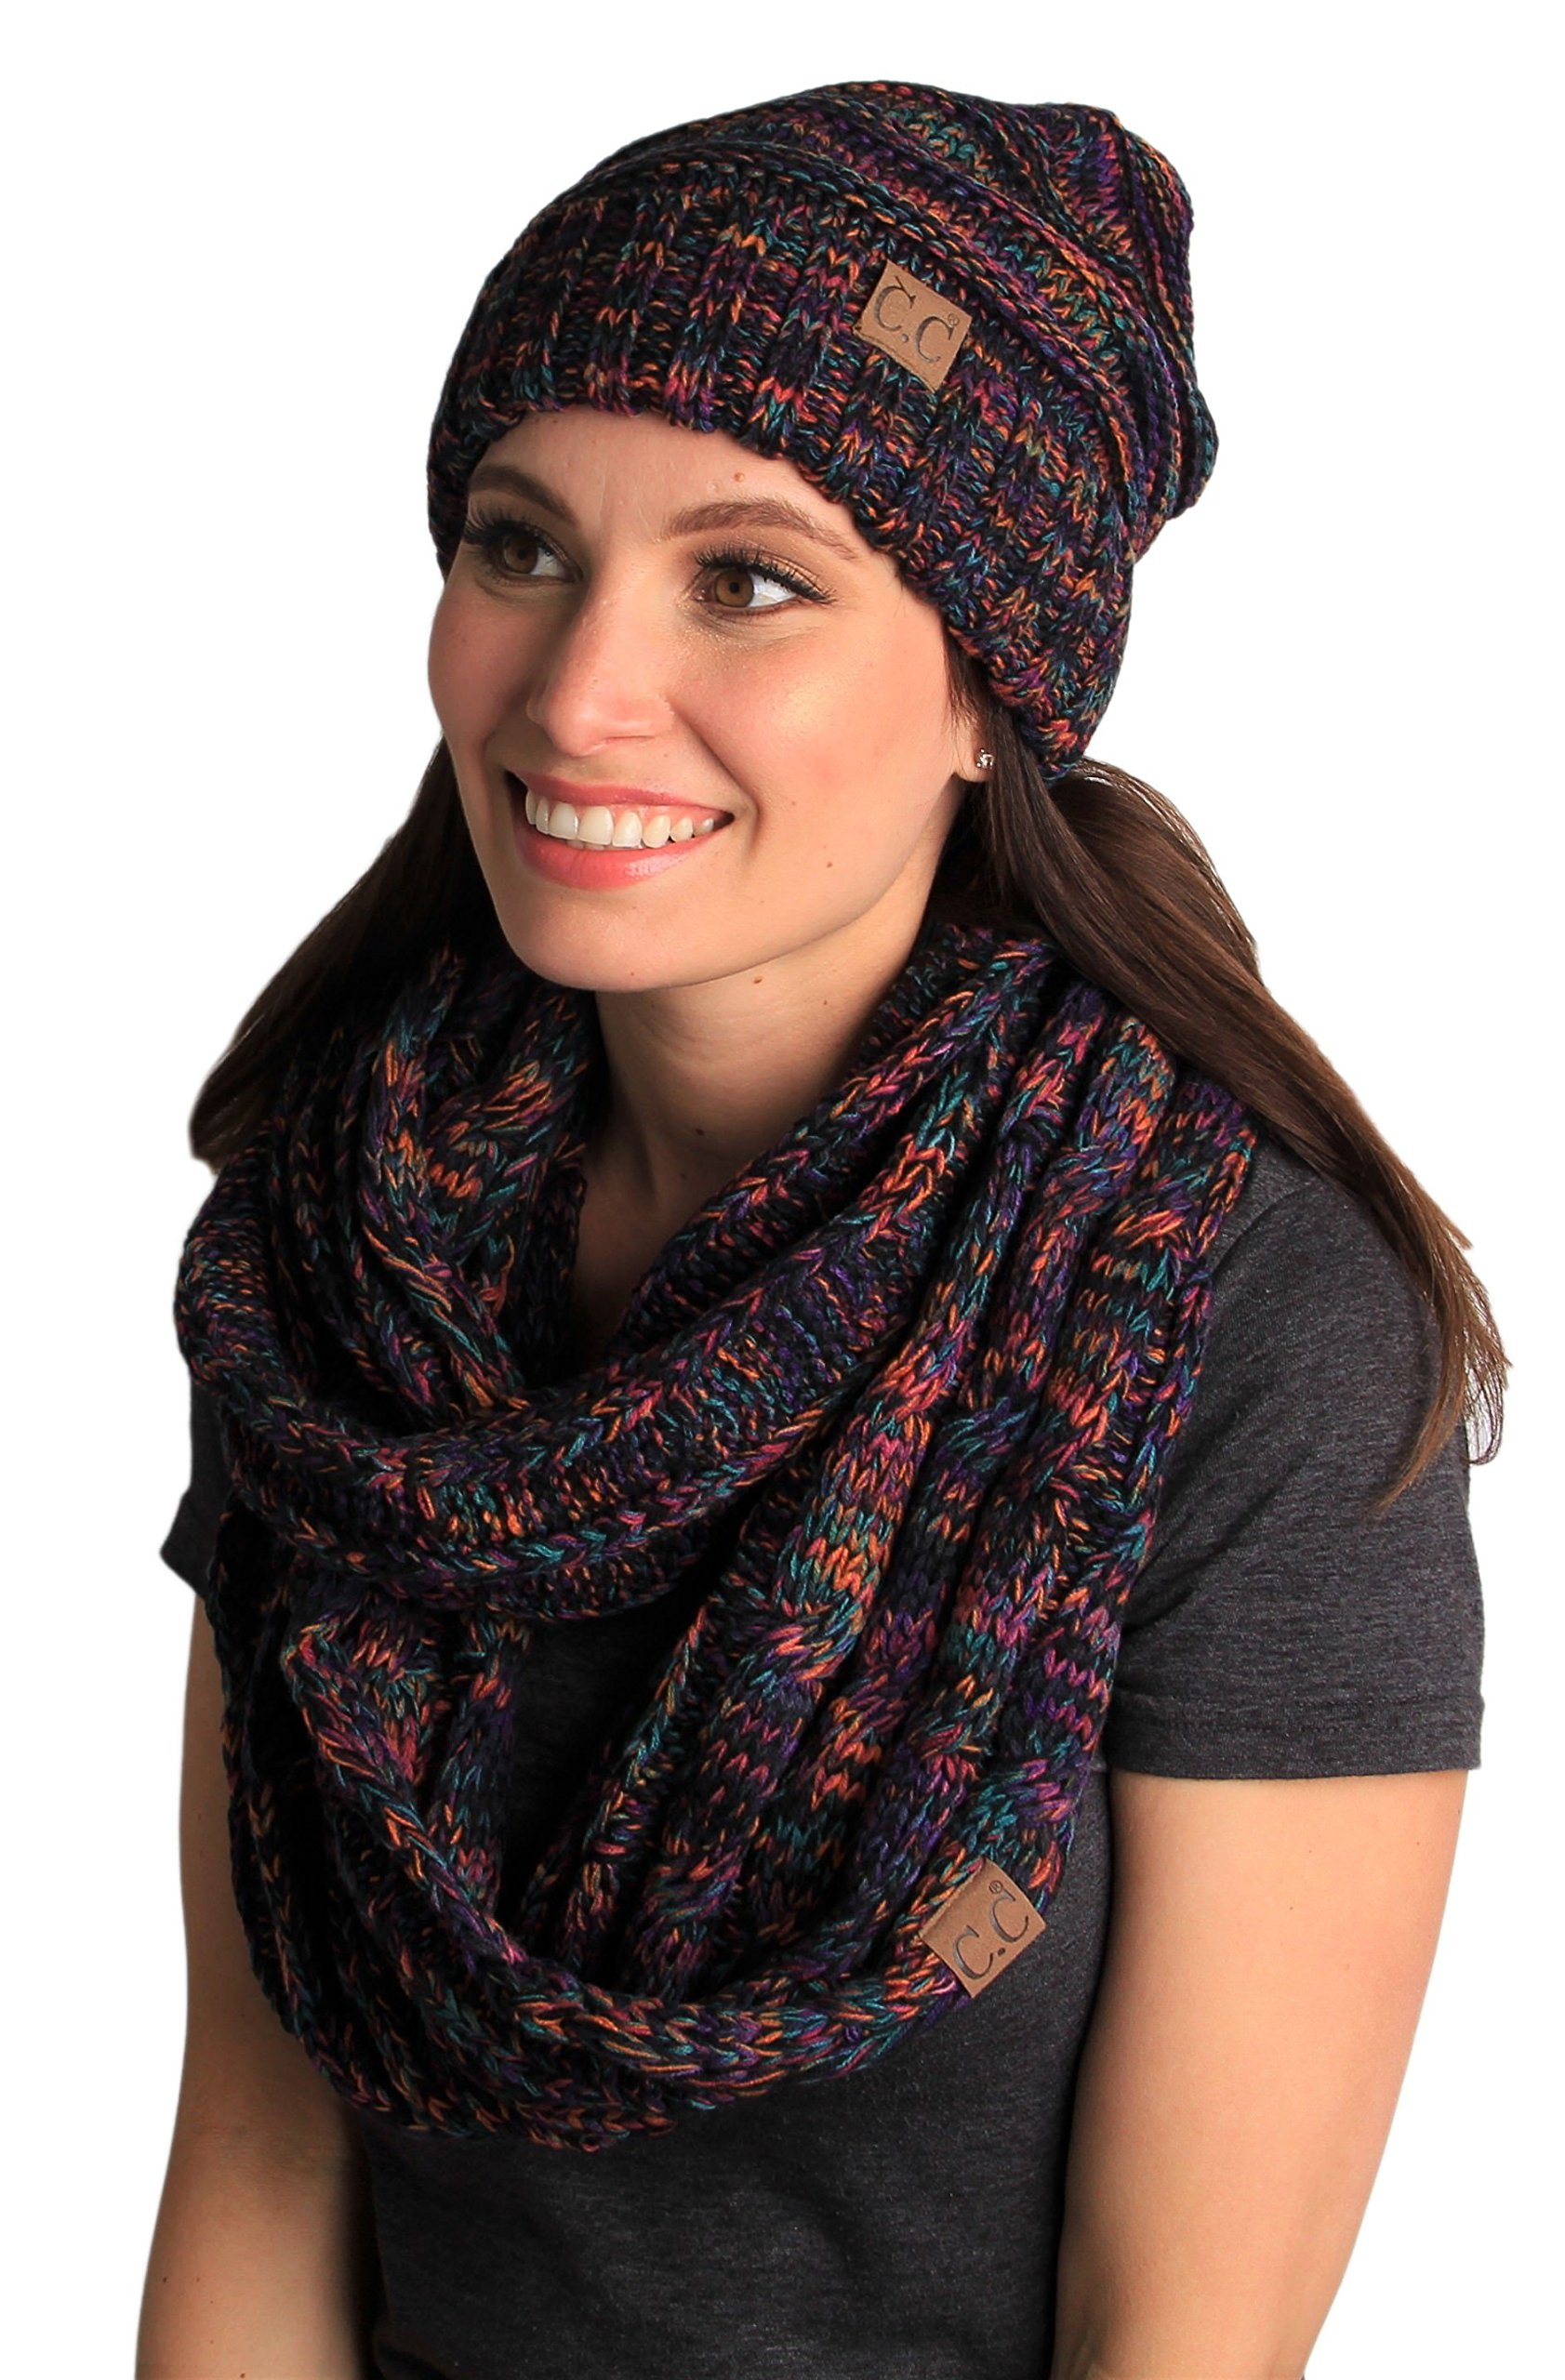 bHS-6100-0641 Oversized Beanie Matching Scarf Set Bundle - Kaleidoscope 4#32 by Funky Junque